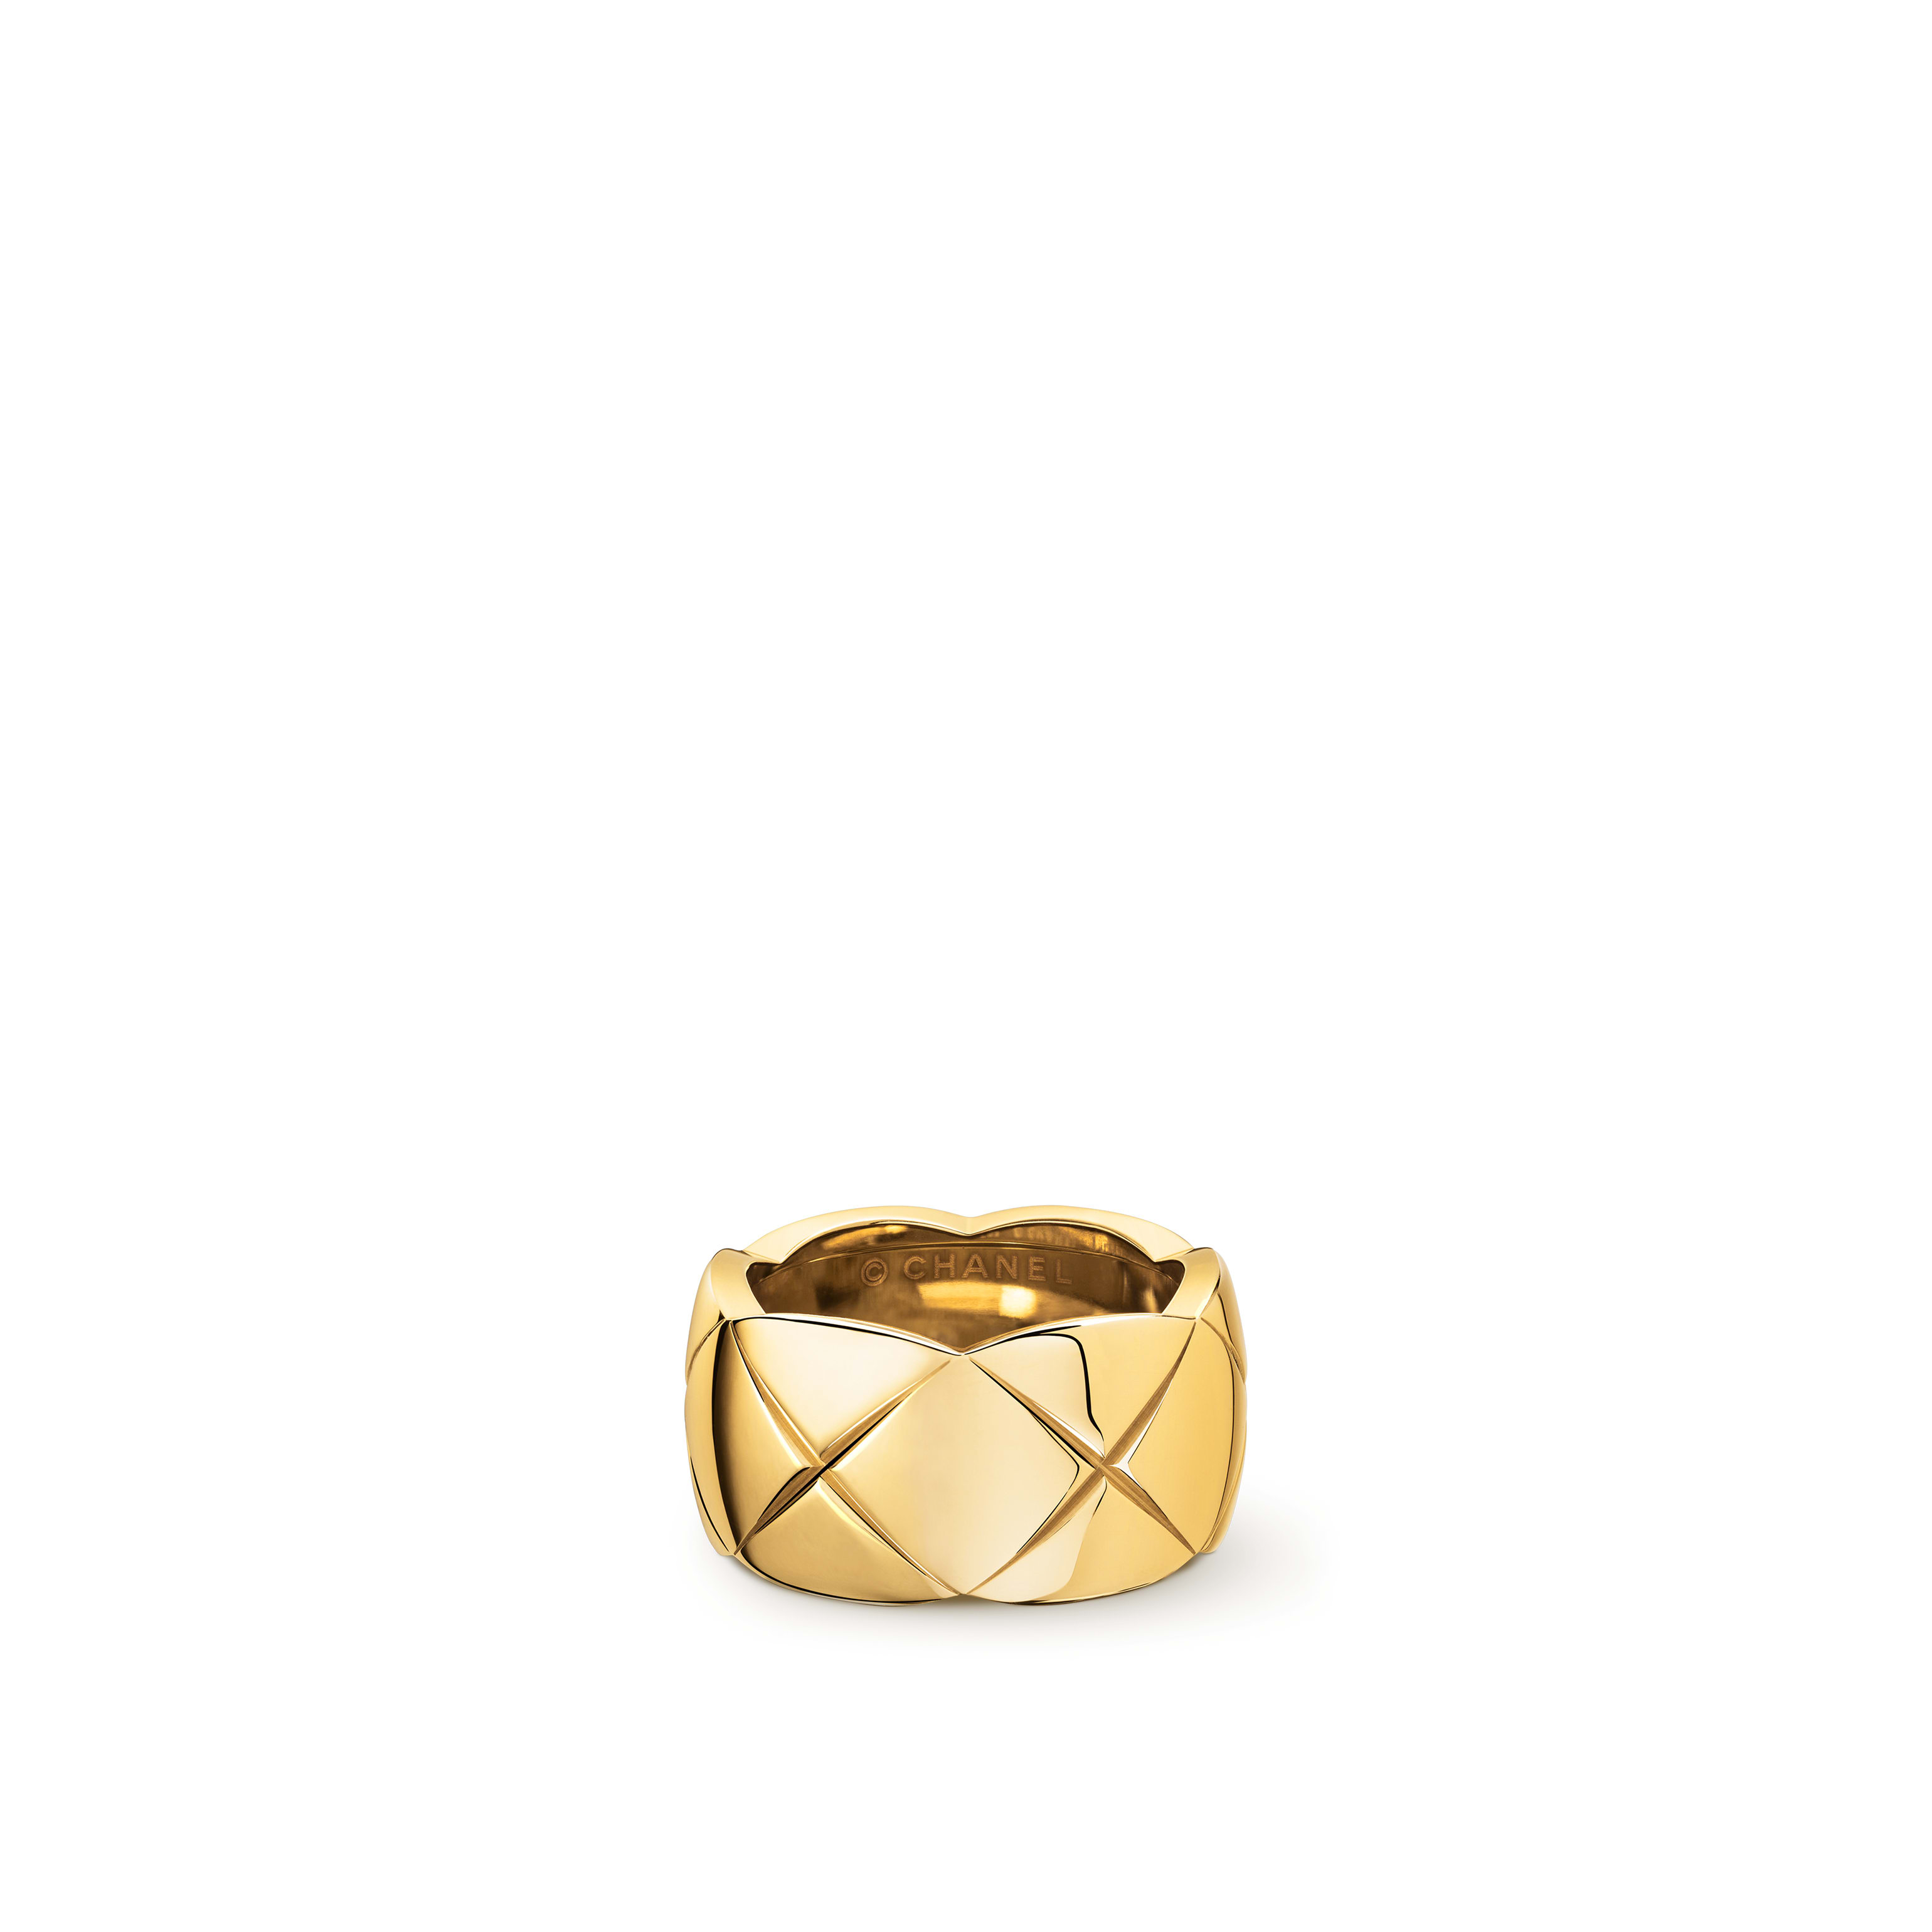 Coco Crush ring - Quilted motif, large version, 18K yellow gold - CHANEL - Default view - see standard sized version